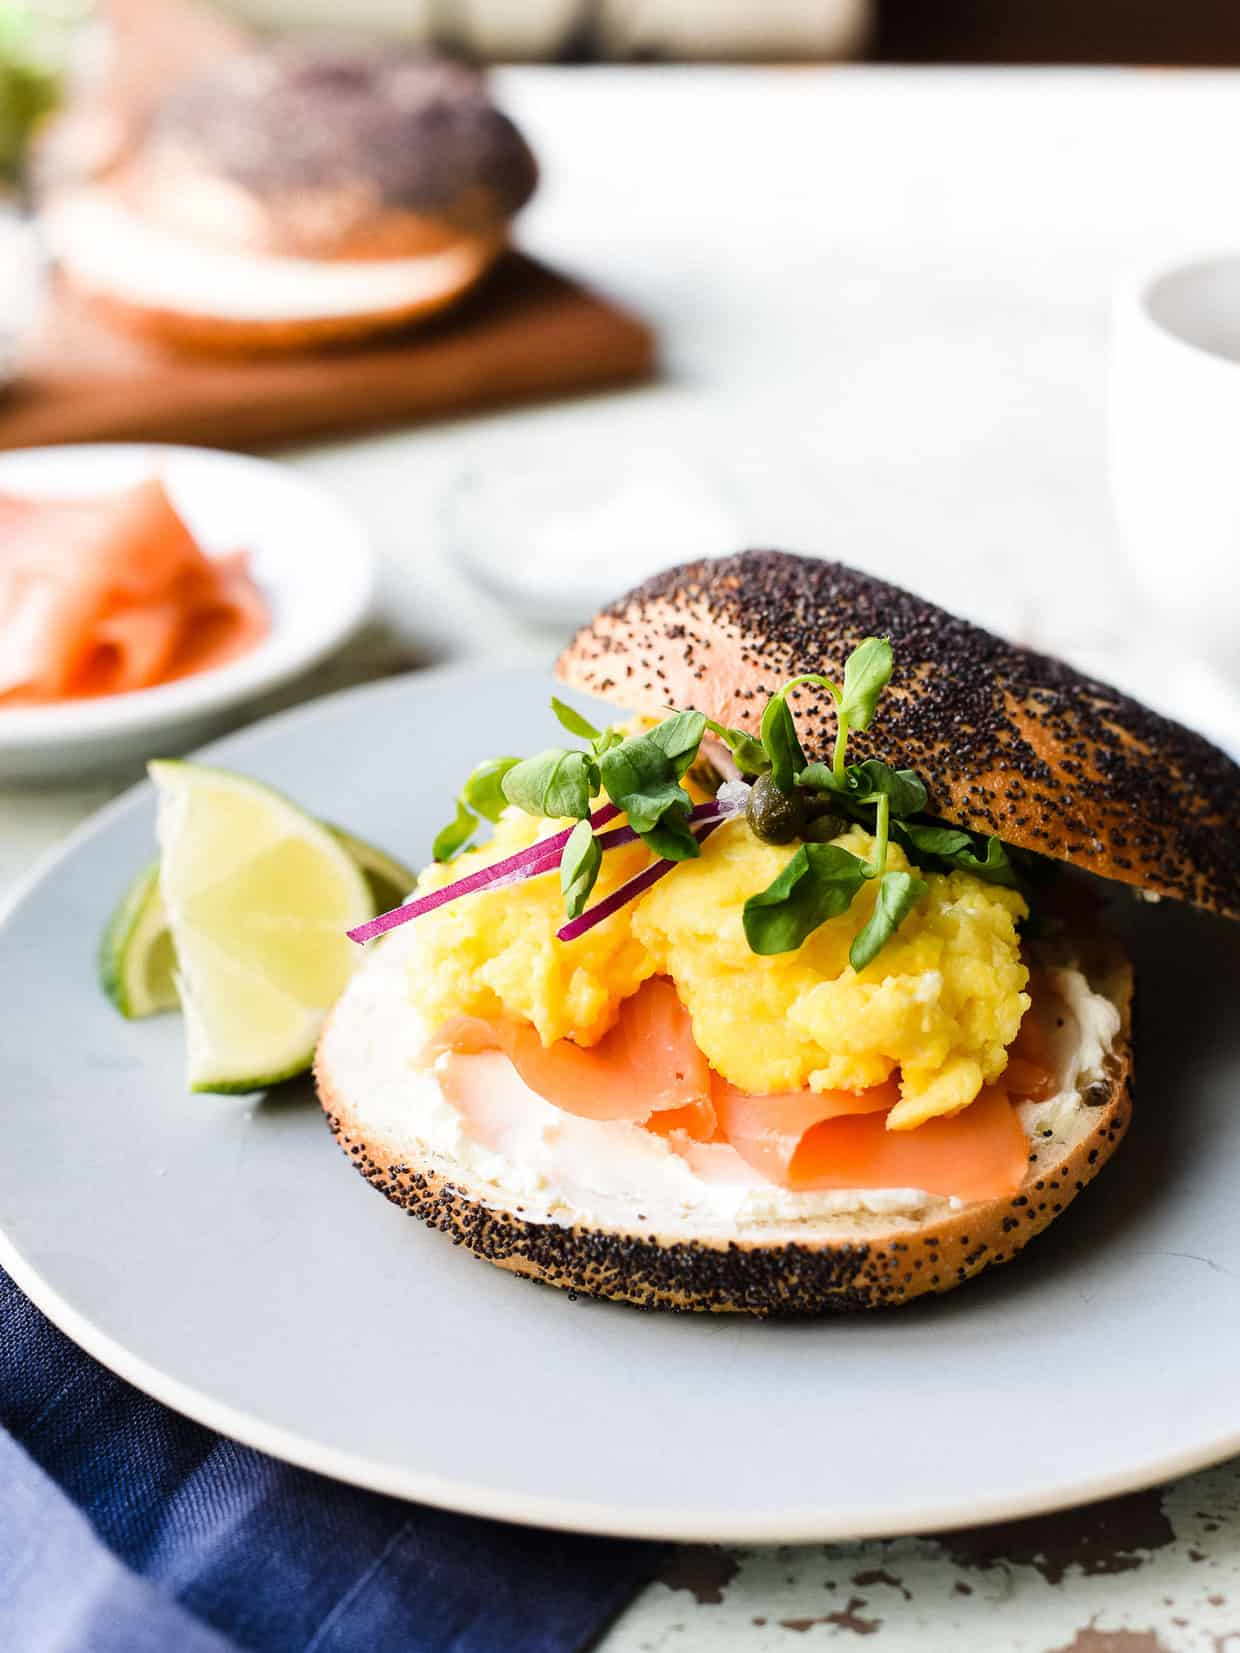 Scottish Smoked Salmon Bagel with Scrambled Eggs